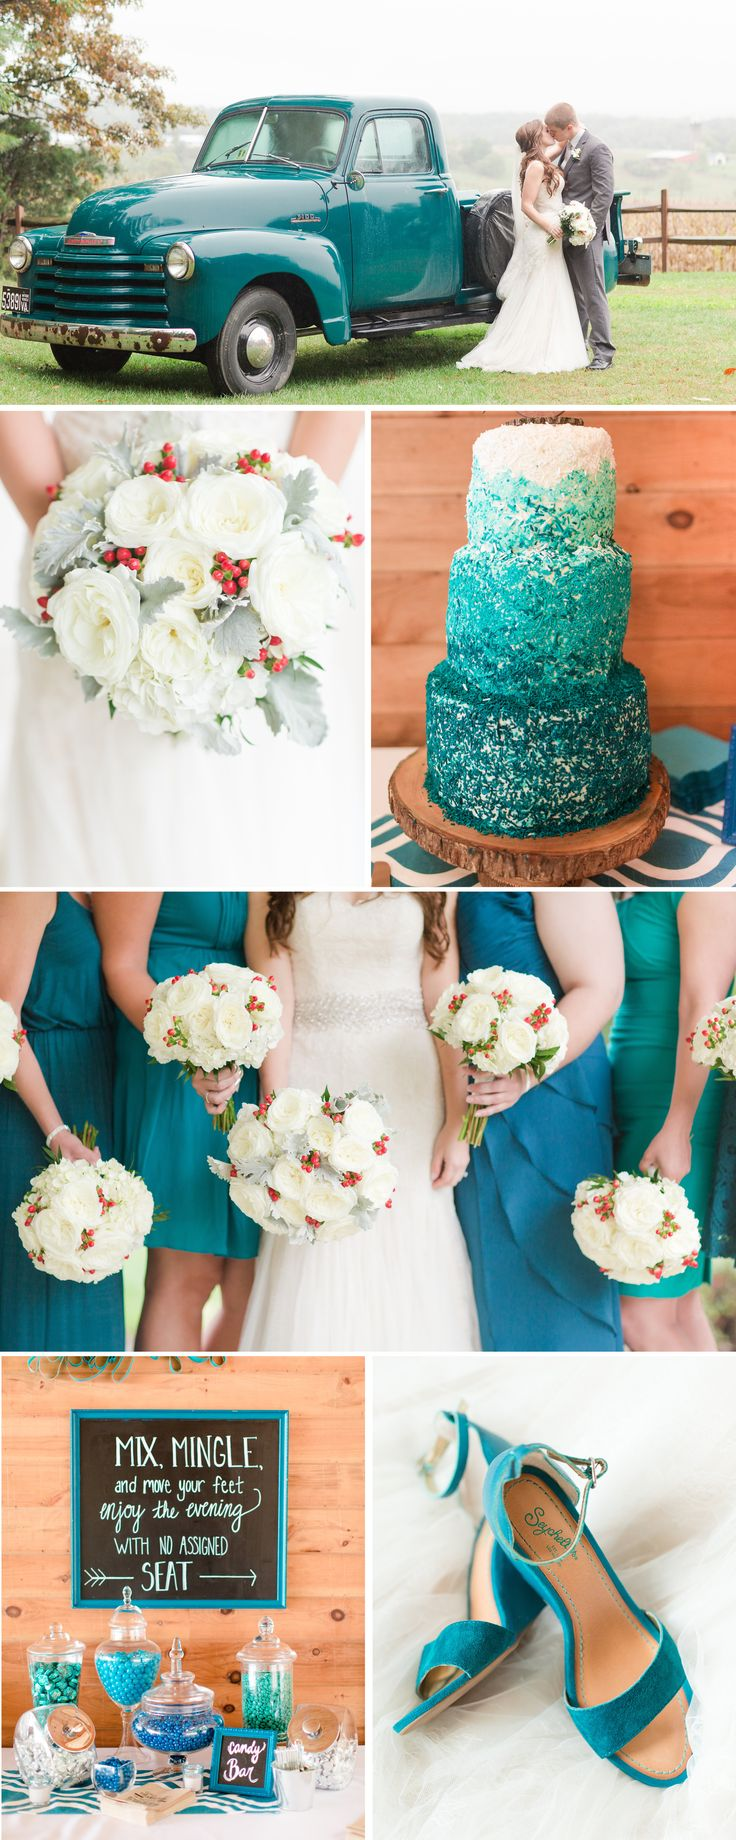 (Less Teal, More Blue But Just As Vibrant!) A Teal Inspired Shenandoah  Valley Wedding In Luray Virginia By Katelyn James Photography